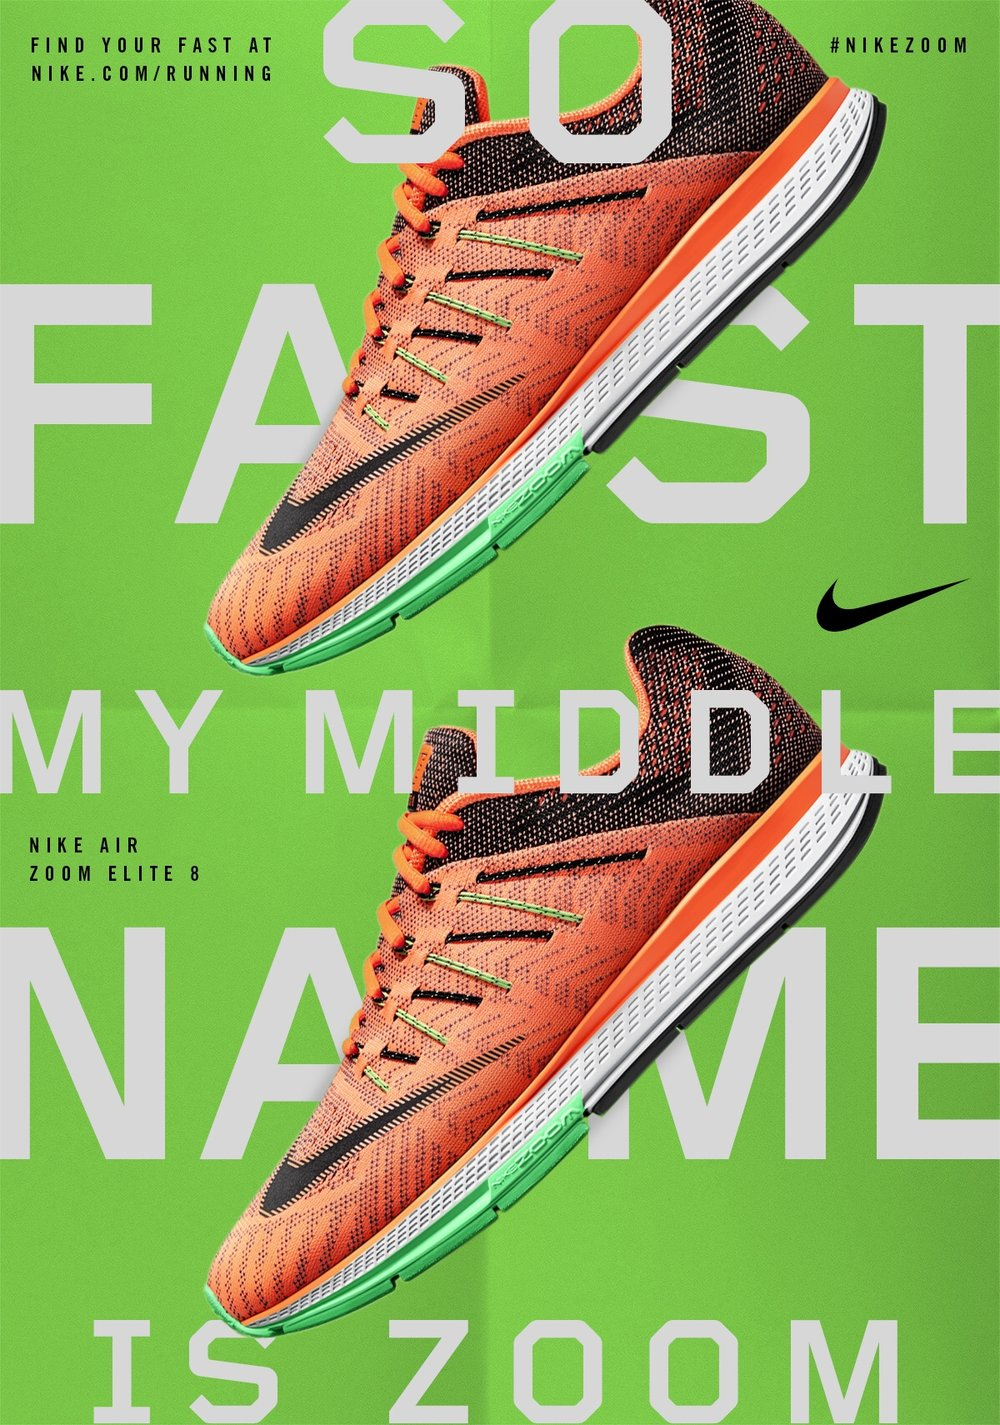 Poster series for Nike Zoom campaign